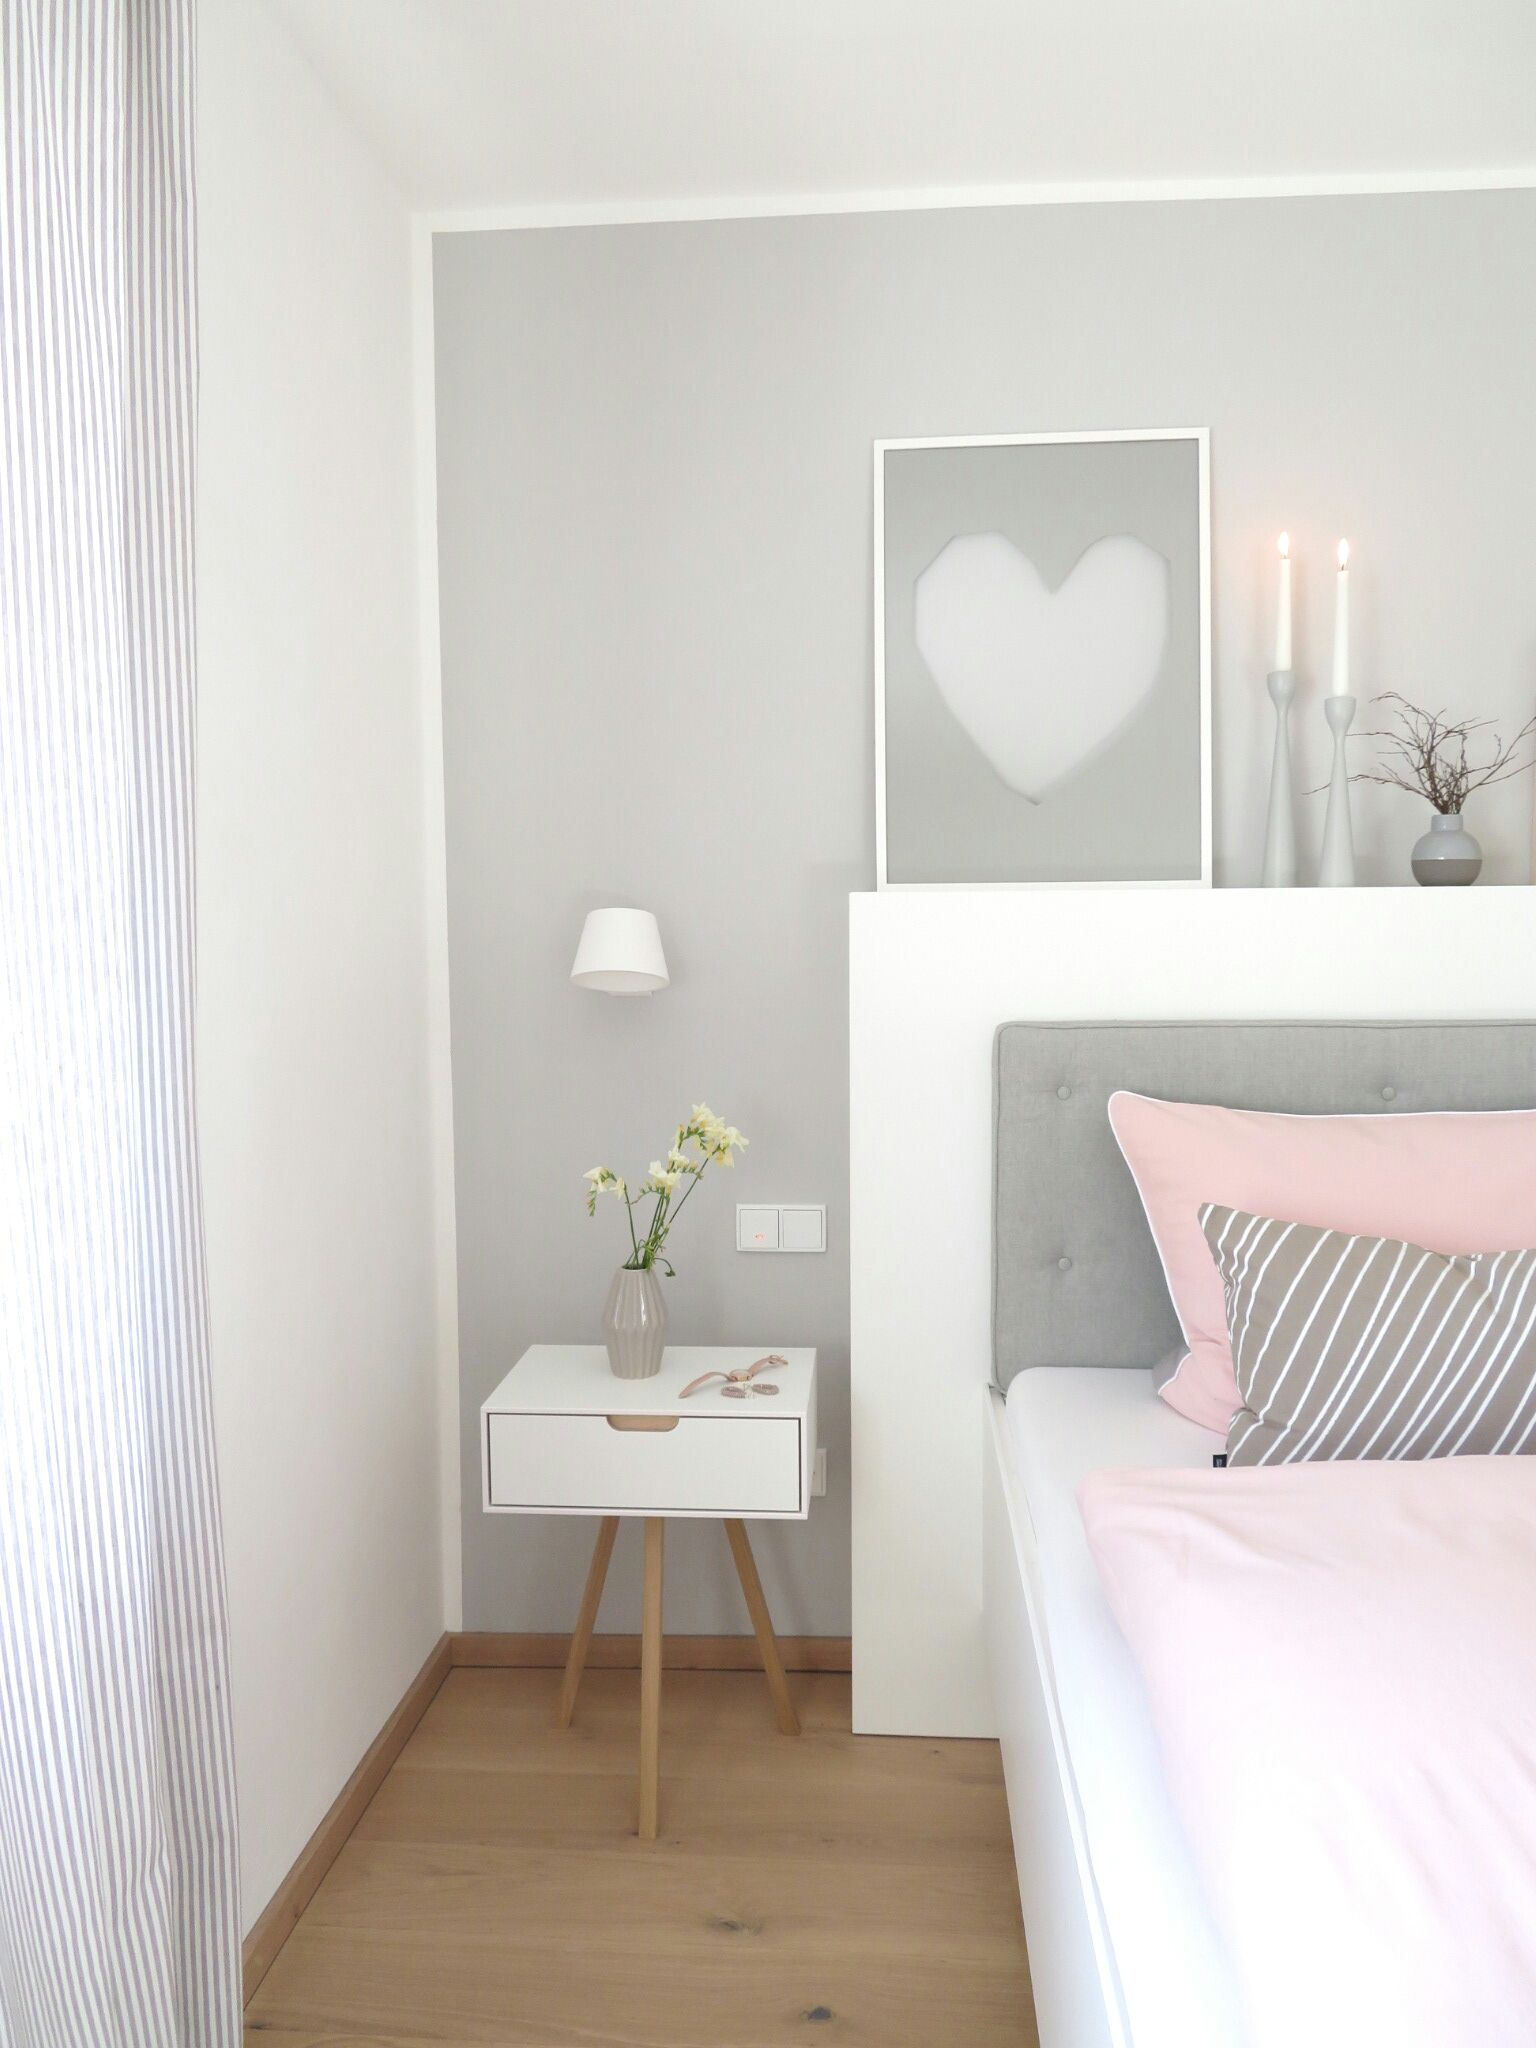 Farbe Schlafzimmer Altrosa Rosa Ideas For The House Bedroom Decor Home Decor Bedroom Und